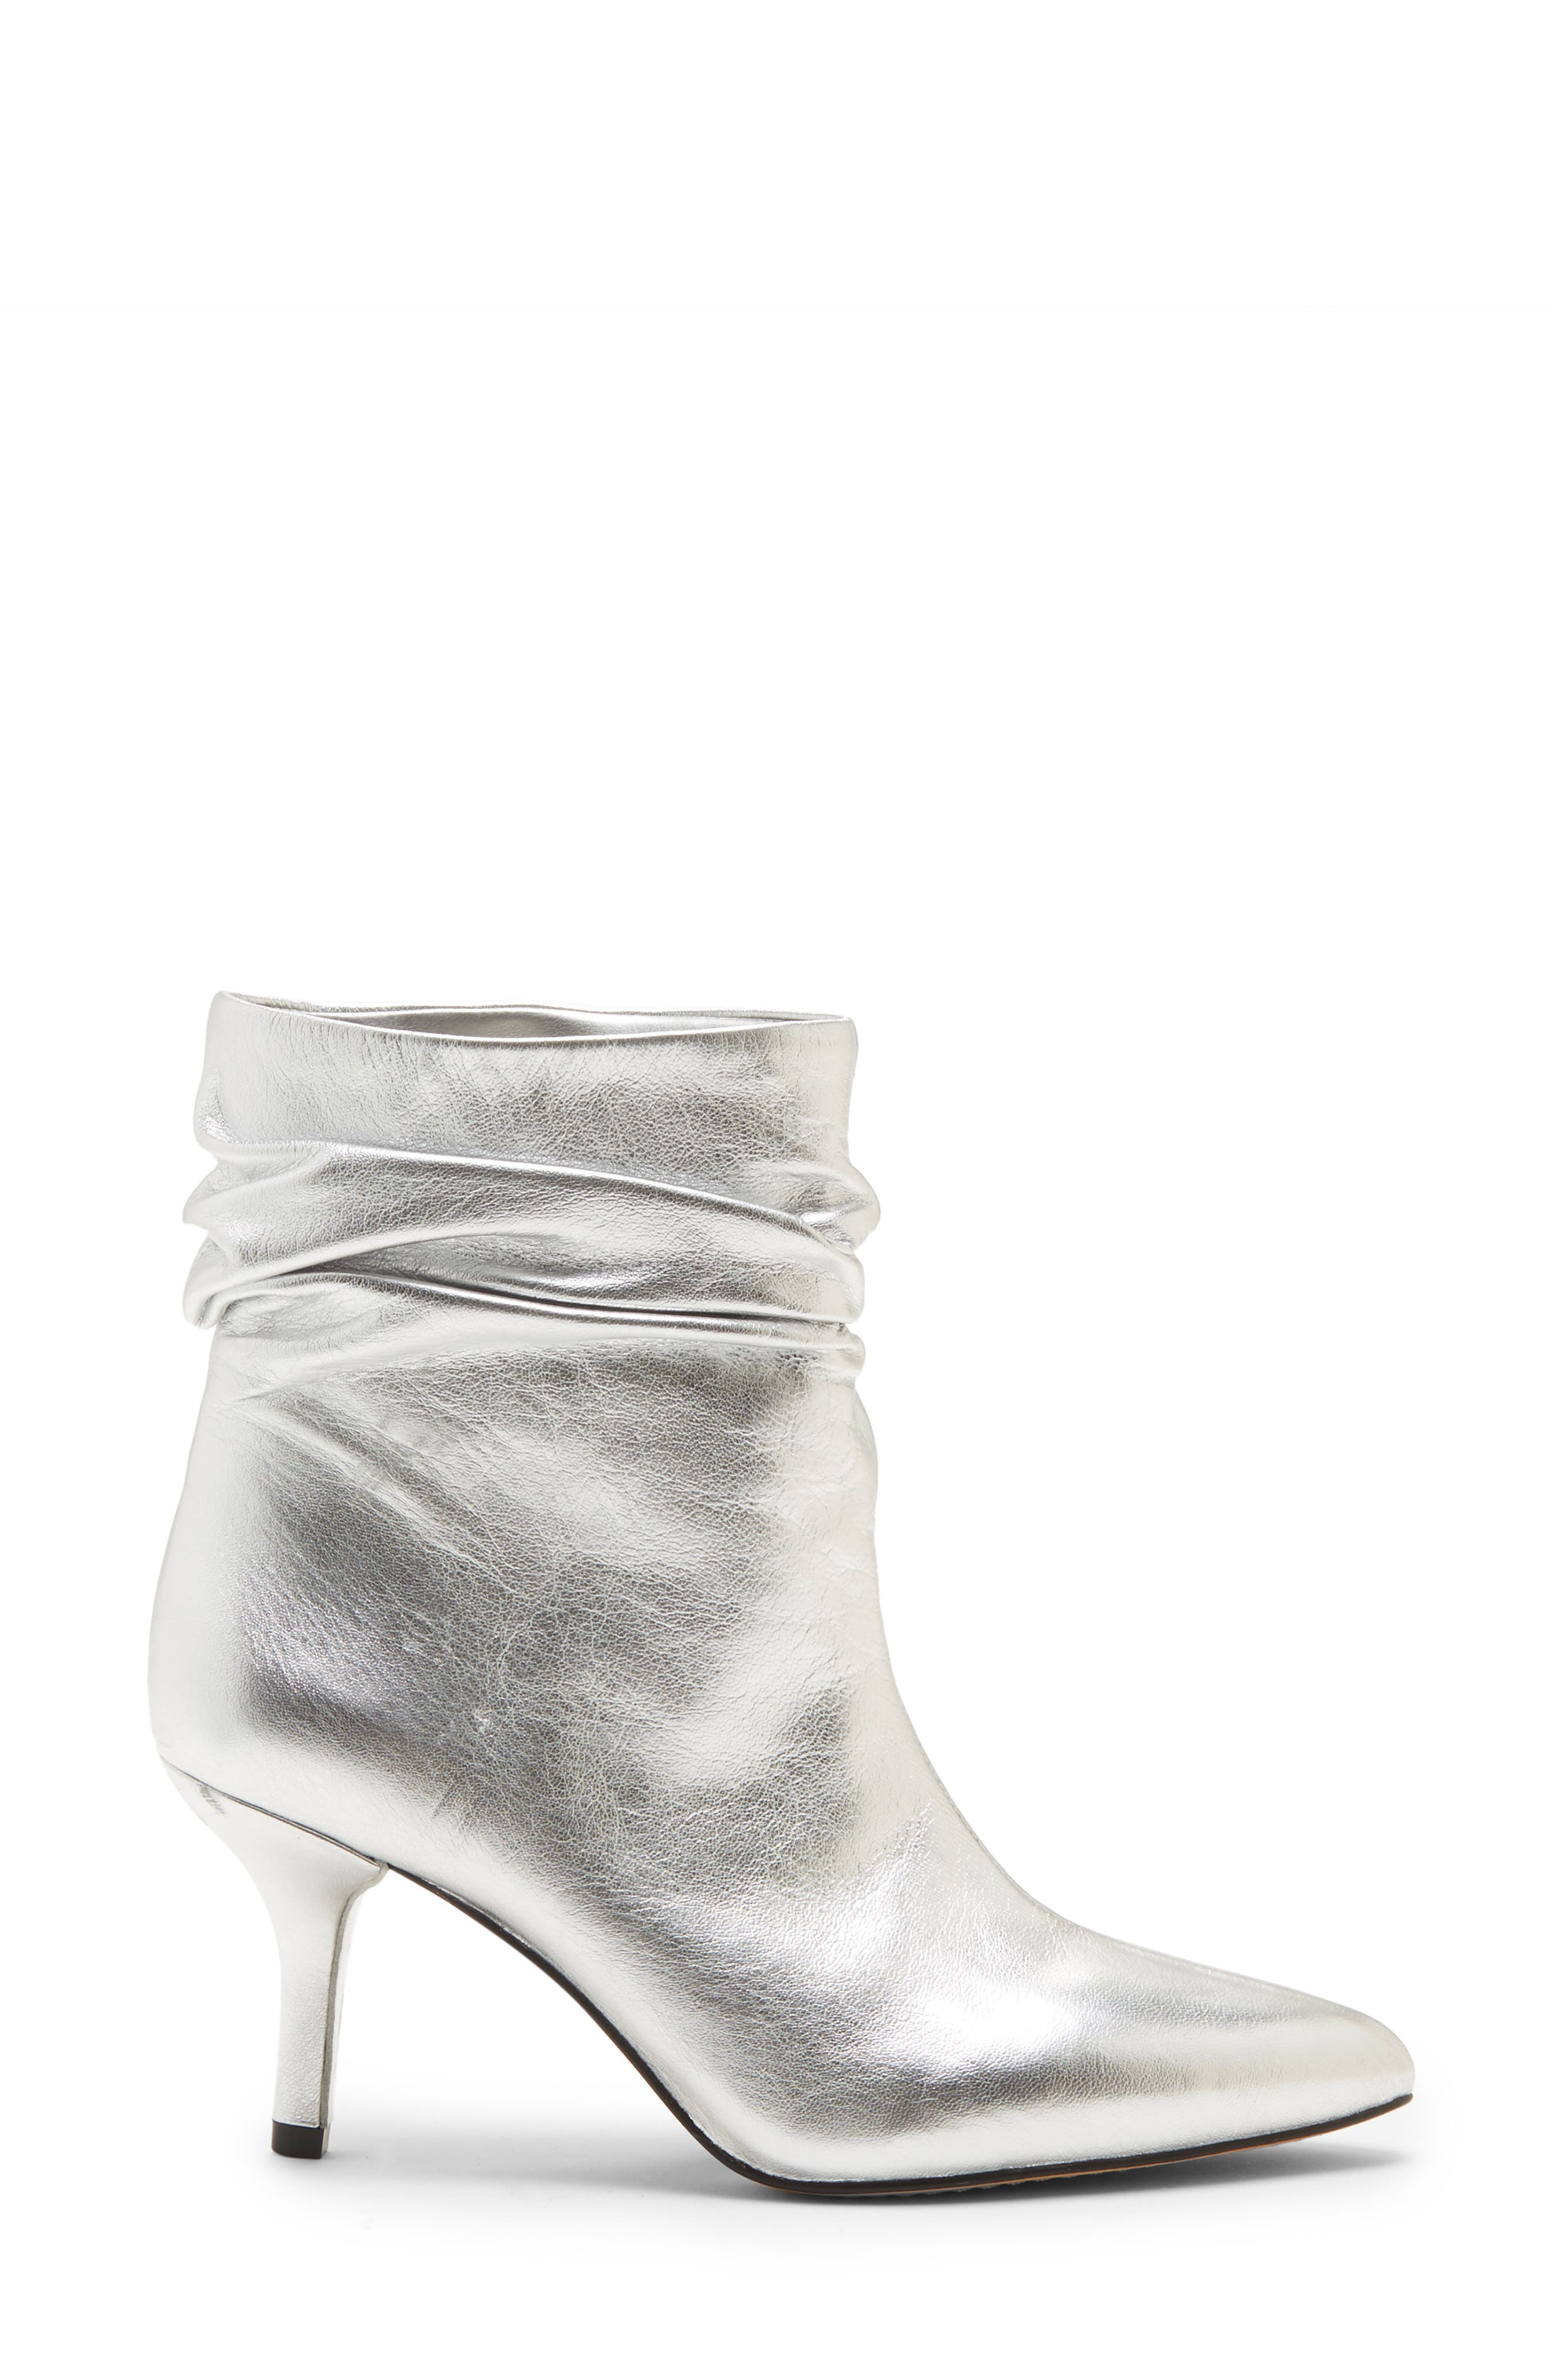 VINCE CAMUTO, Abrianna Bootie, Alternate thumbnail 3, color, GLEAMING SILVER LEATHER